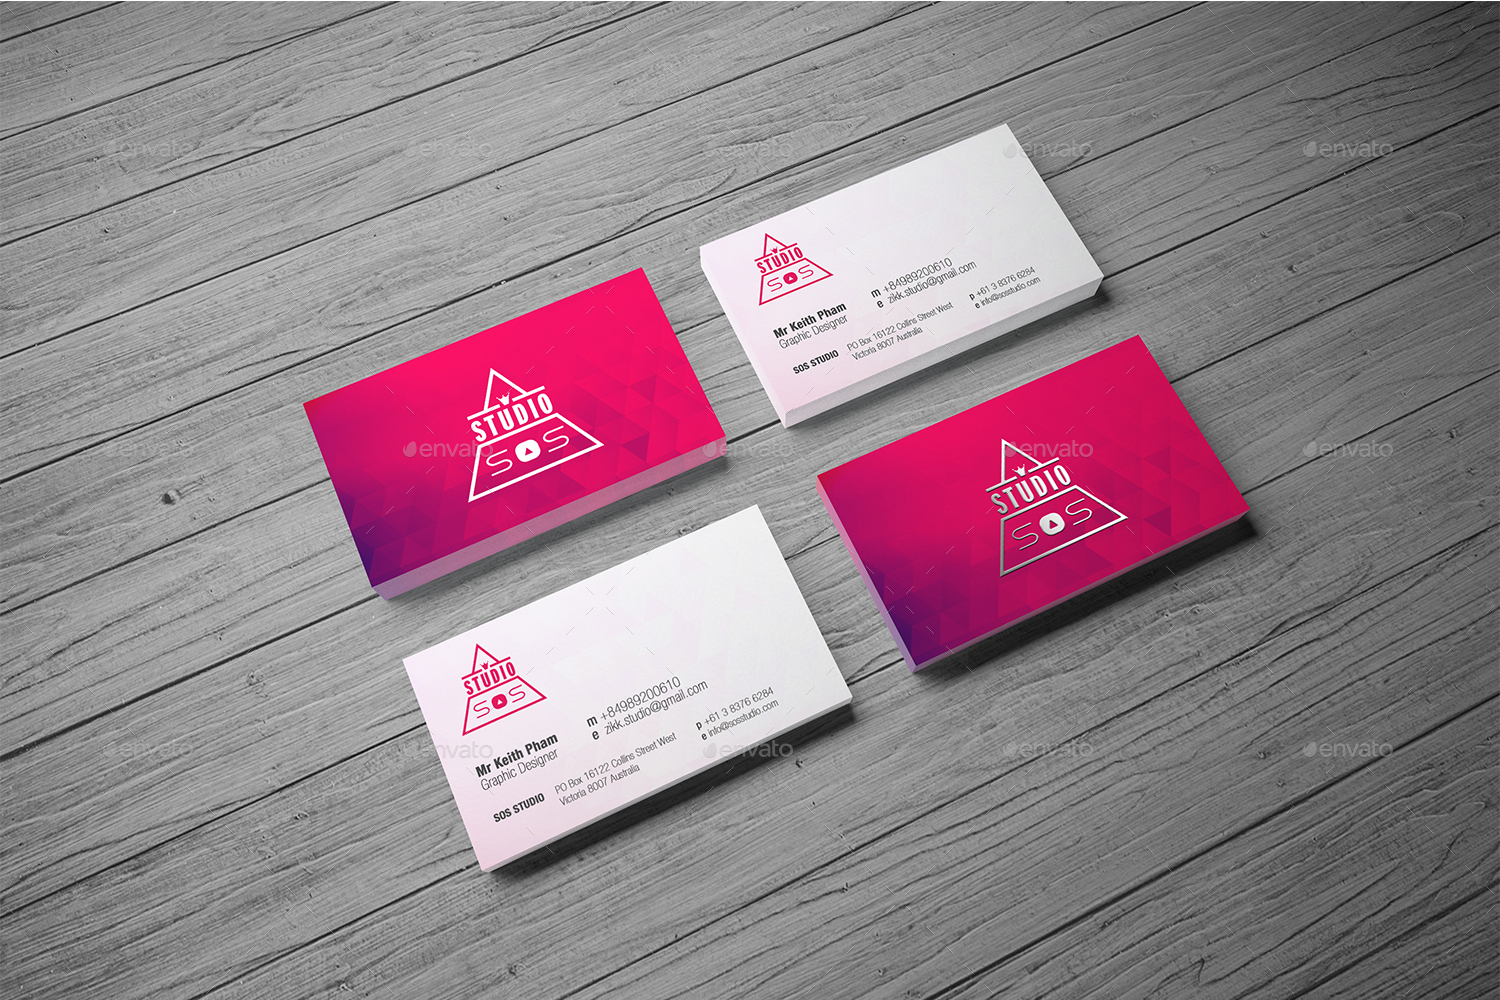 Cute us business card contemporary business card ideas etadamfo standard us business card mockup by zikk graphicriver reheart Choice Image